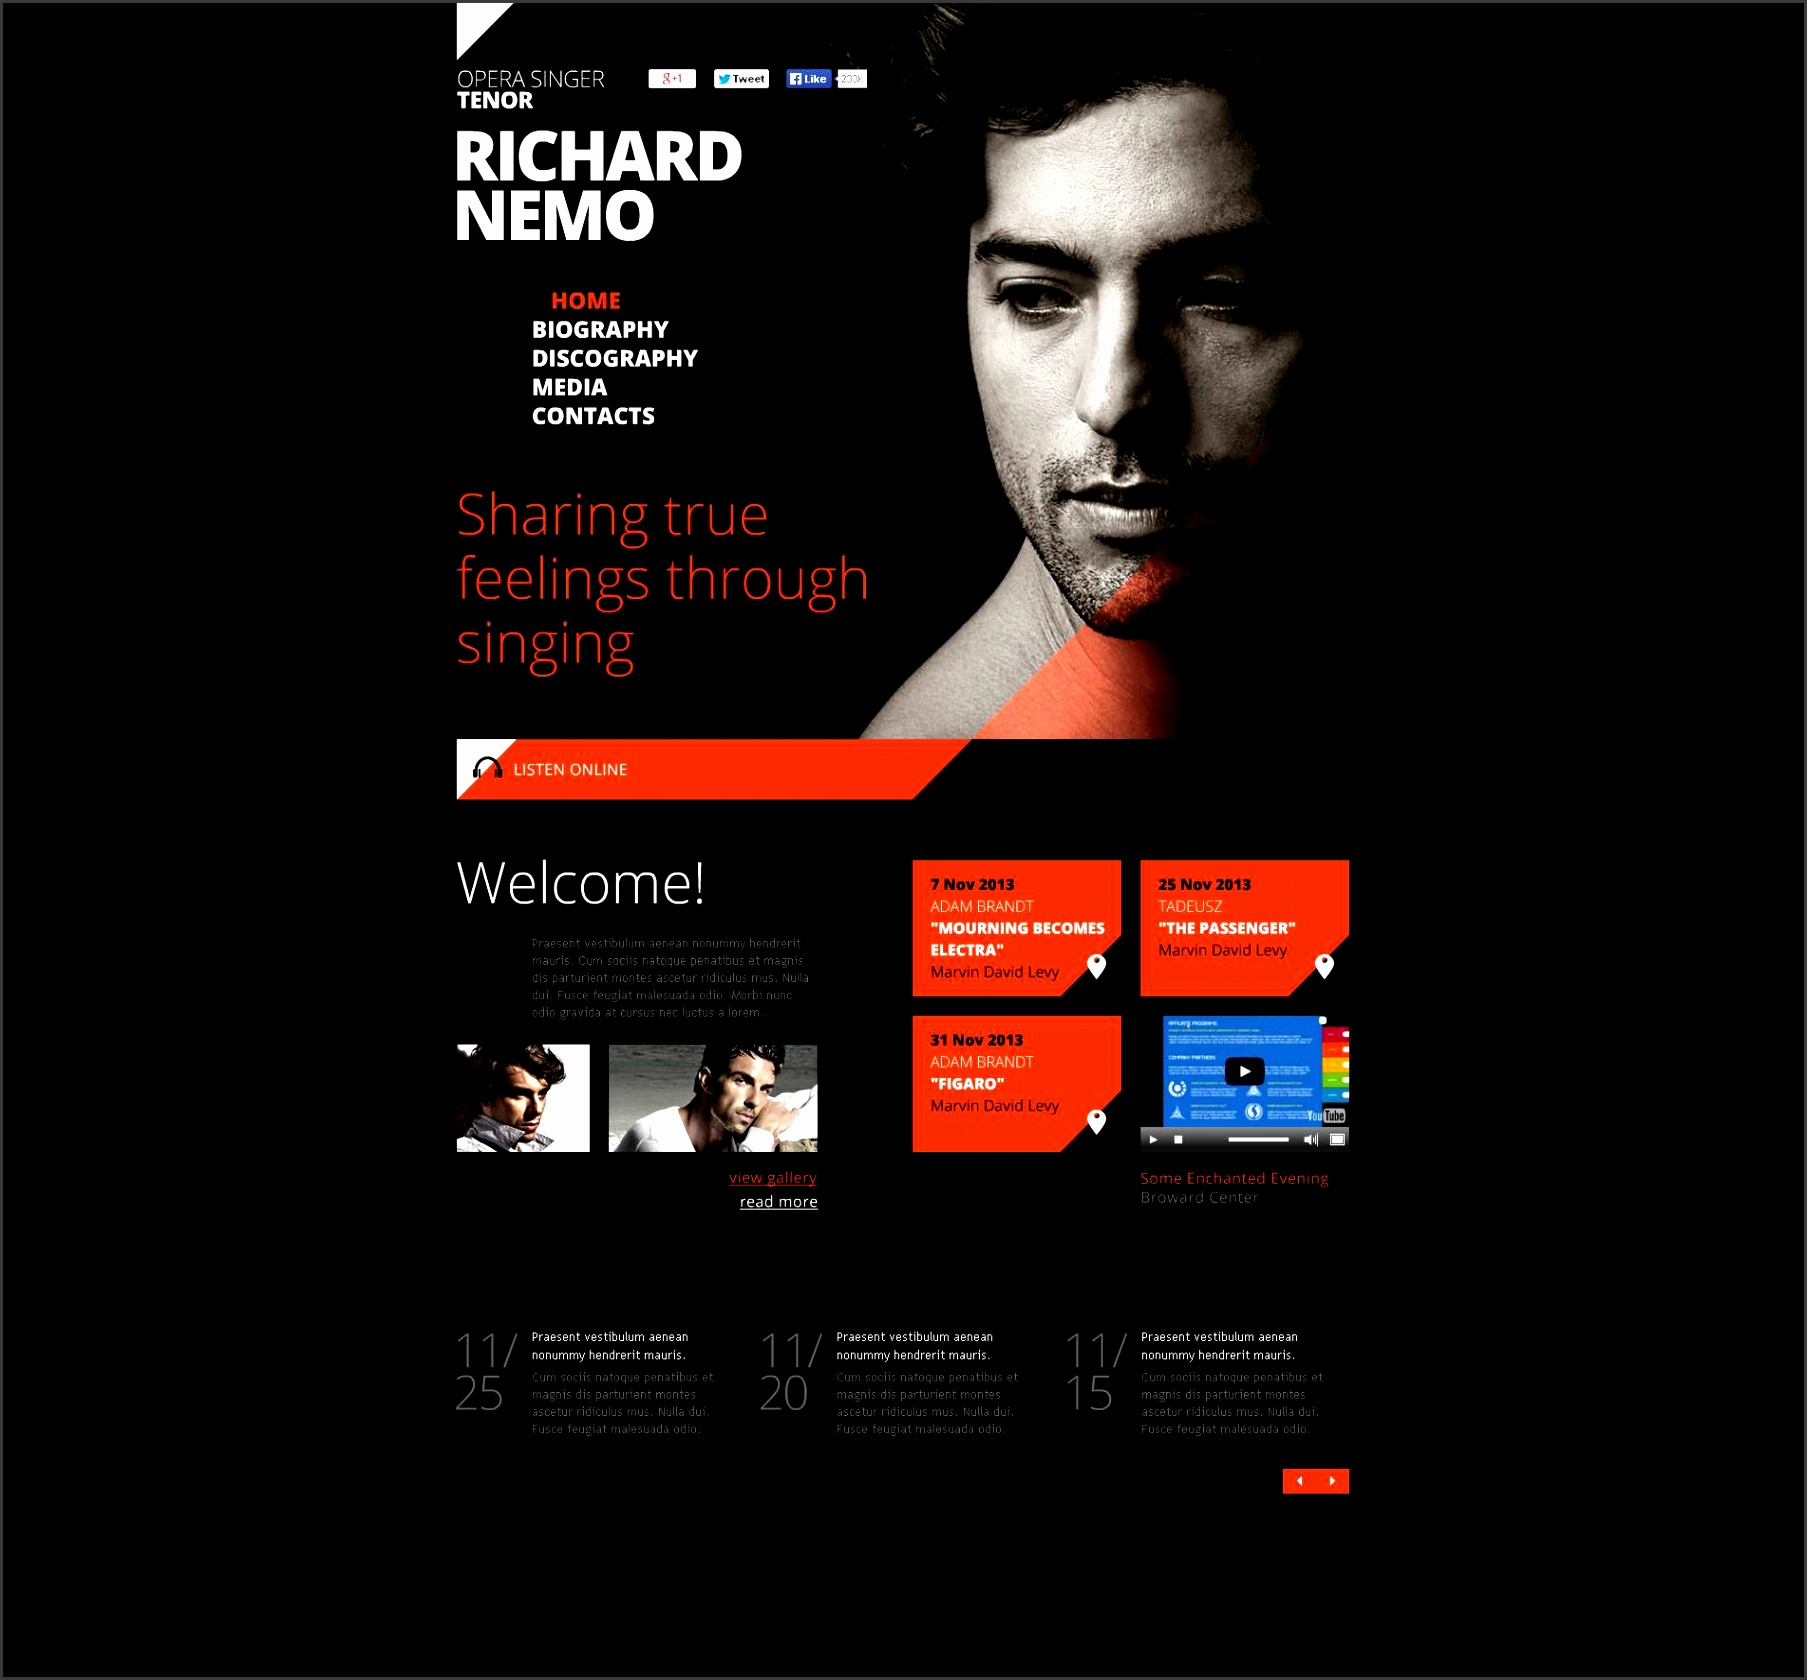 website design template singer personal page music musician song tune listening hits webpage new